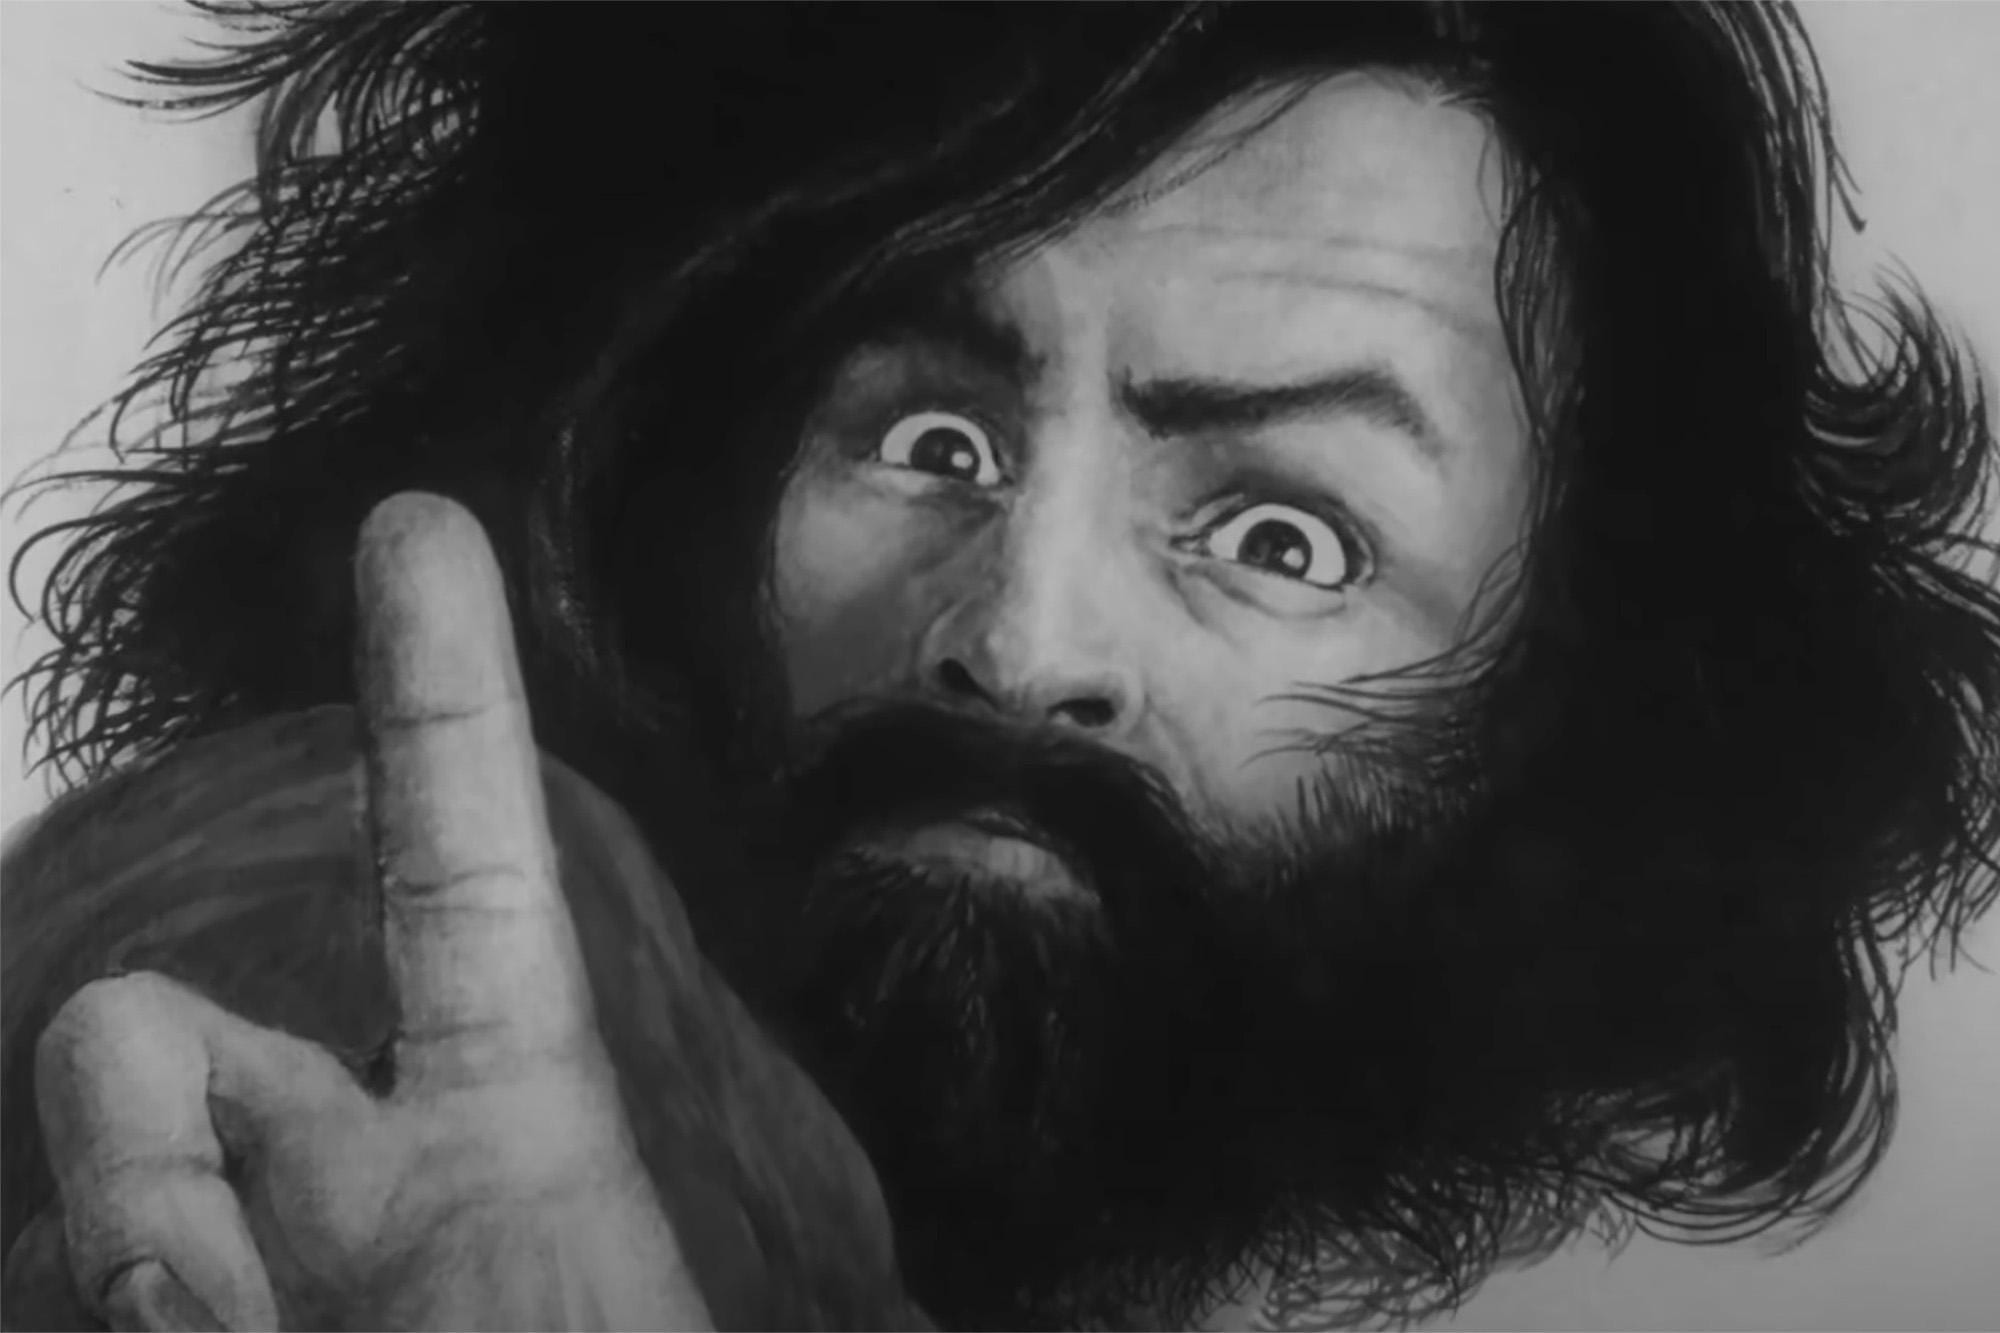 'The Other Side of Madness' Is the Most Obscure Charles Manson Film